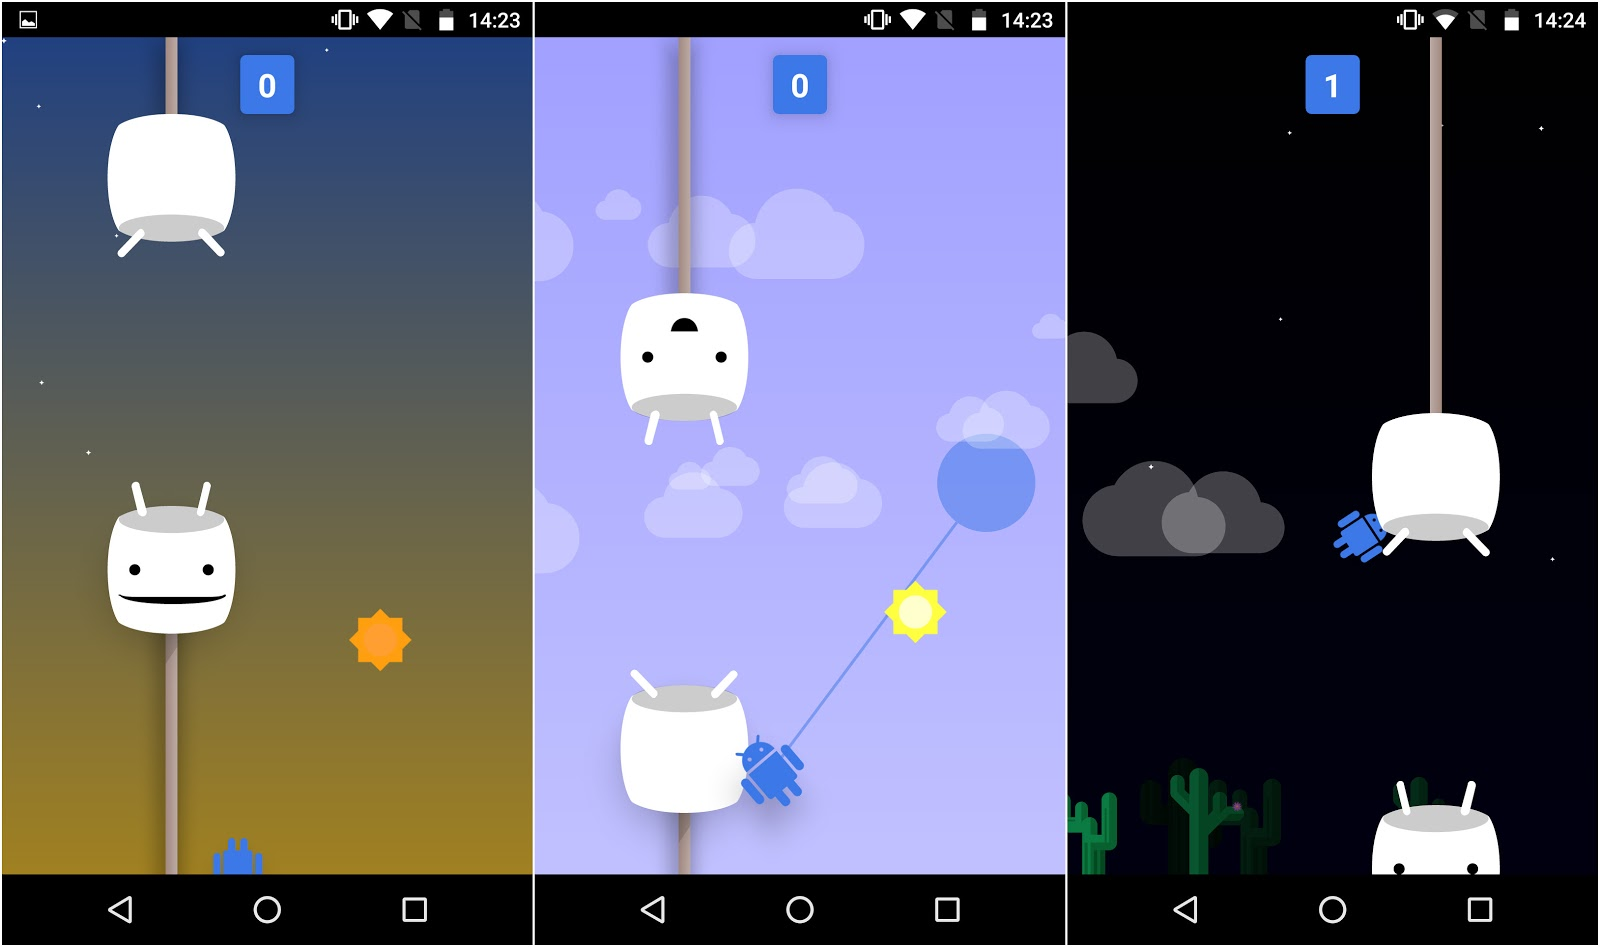 Secret android game